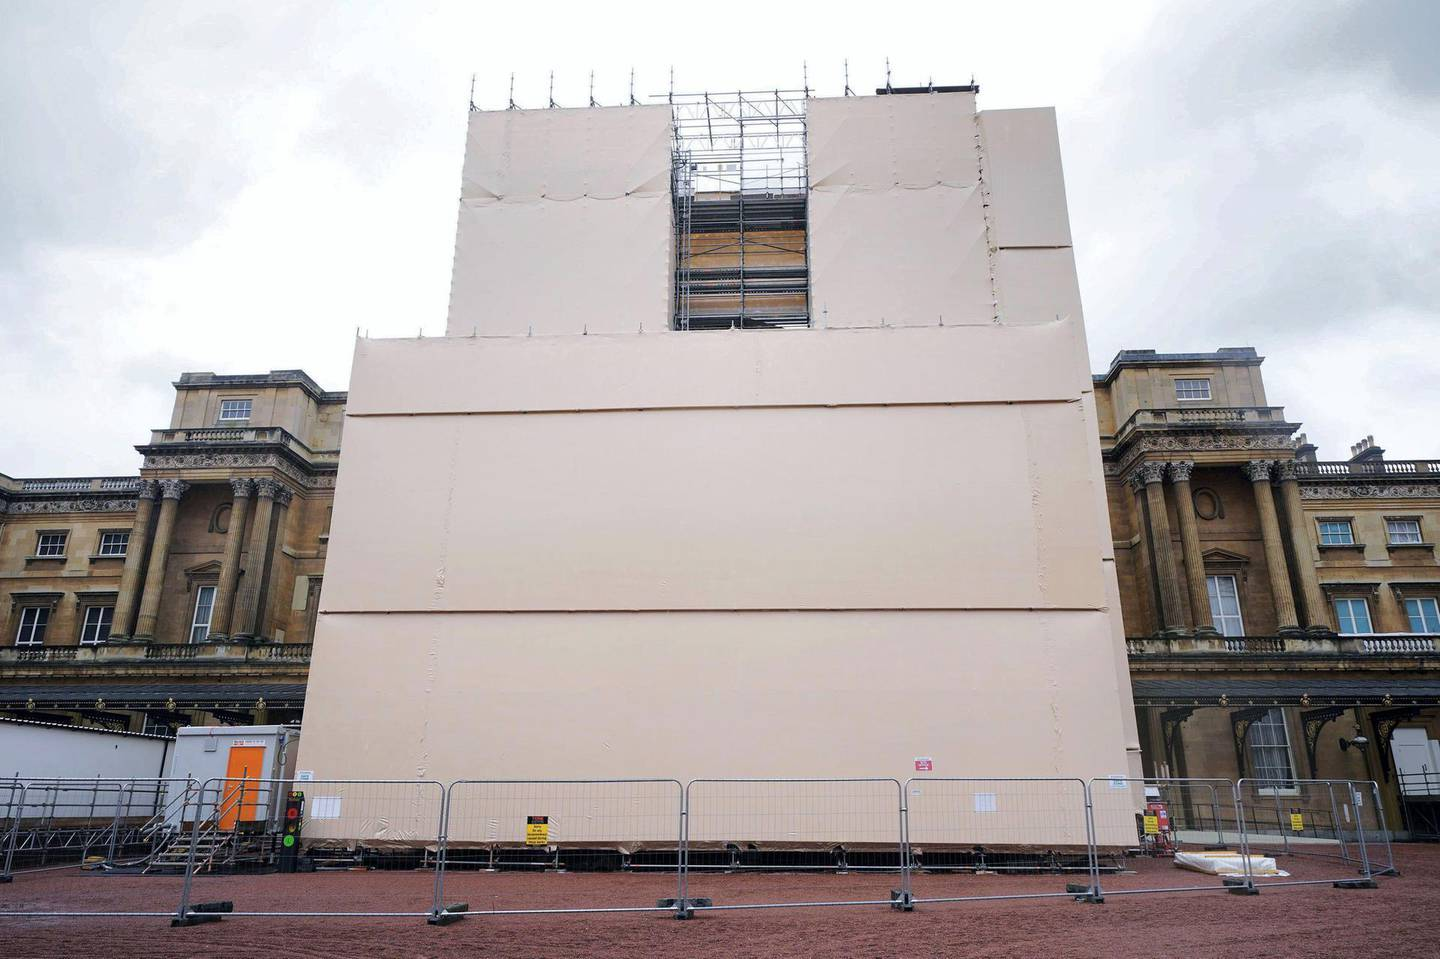 2G4XTKM Building work takes place on the Grand Entrance of Buckingham Palace in London, part of the 10-year refurbishment programme for the royal residence. Picture date: Monday June 21, 2021.